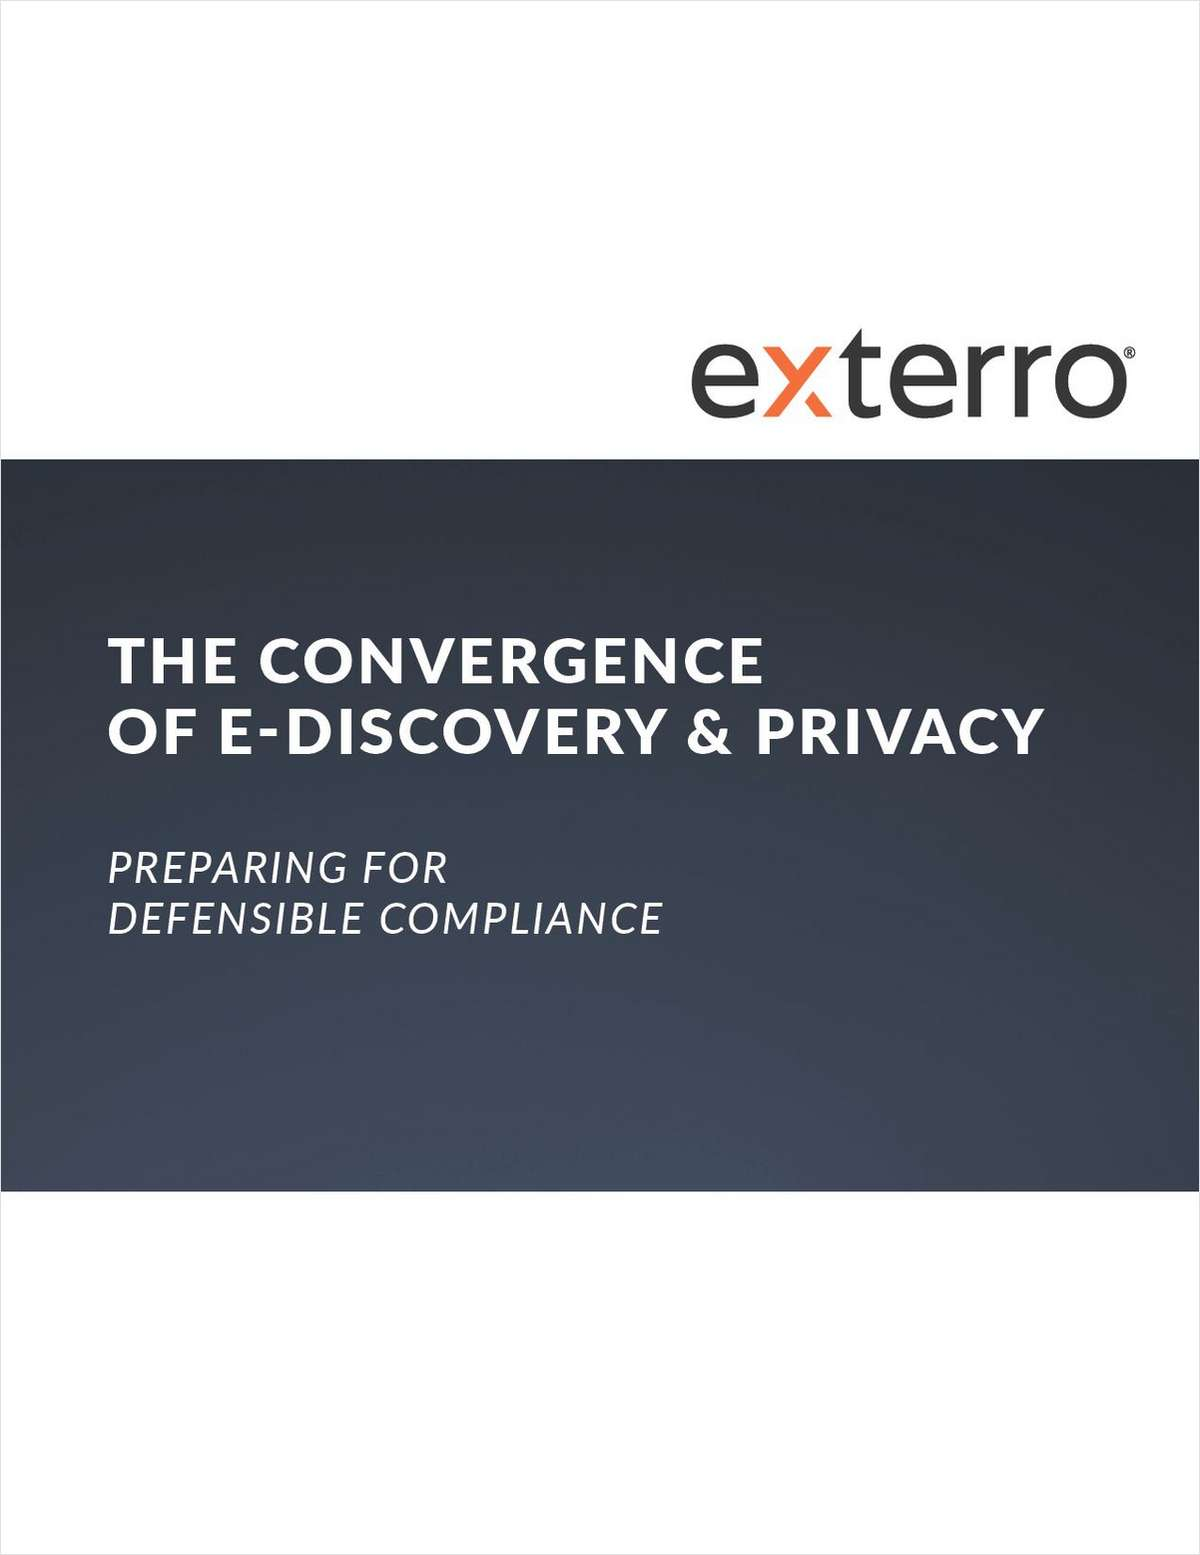 The Convergence of E-Discovery & Privacy: Preparing for Defensible Compliance